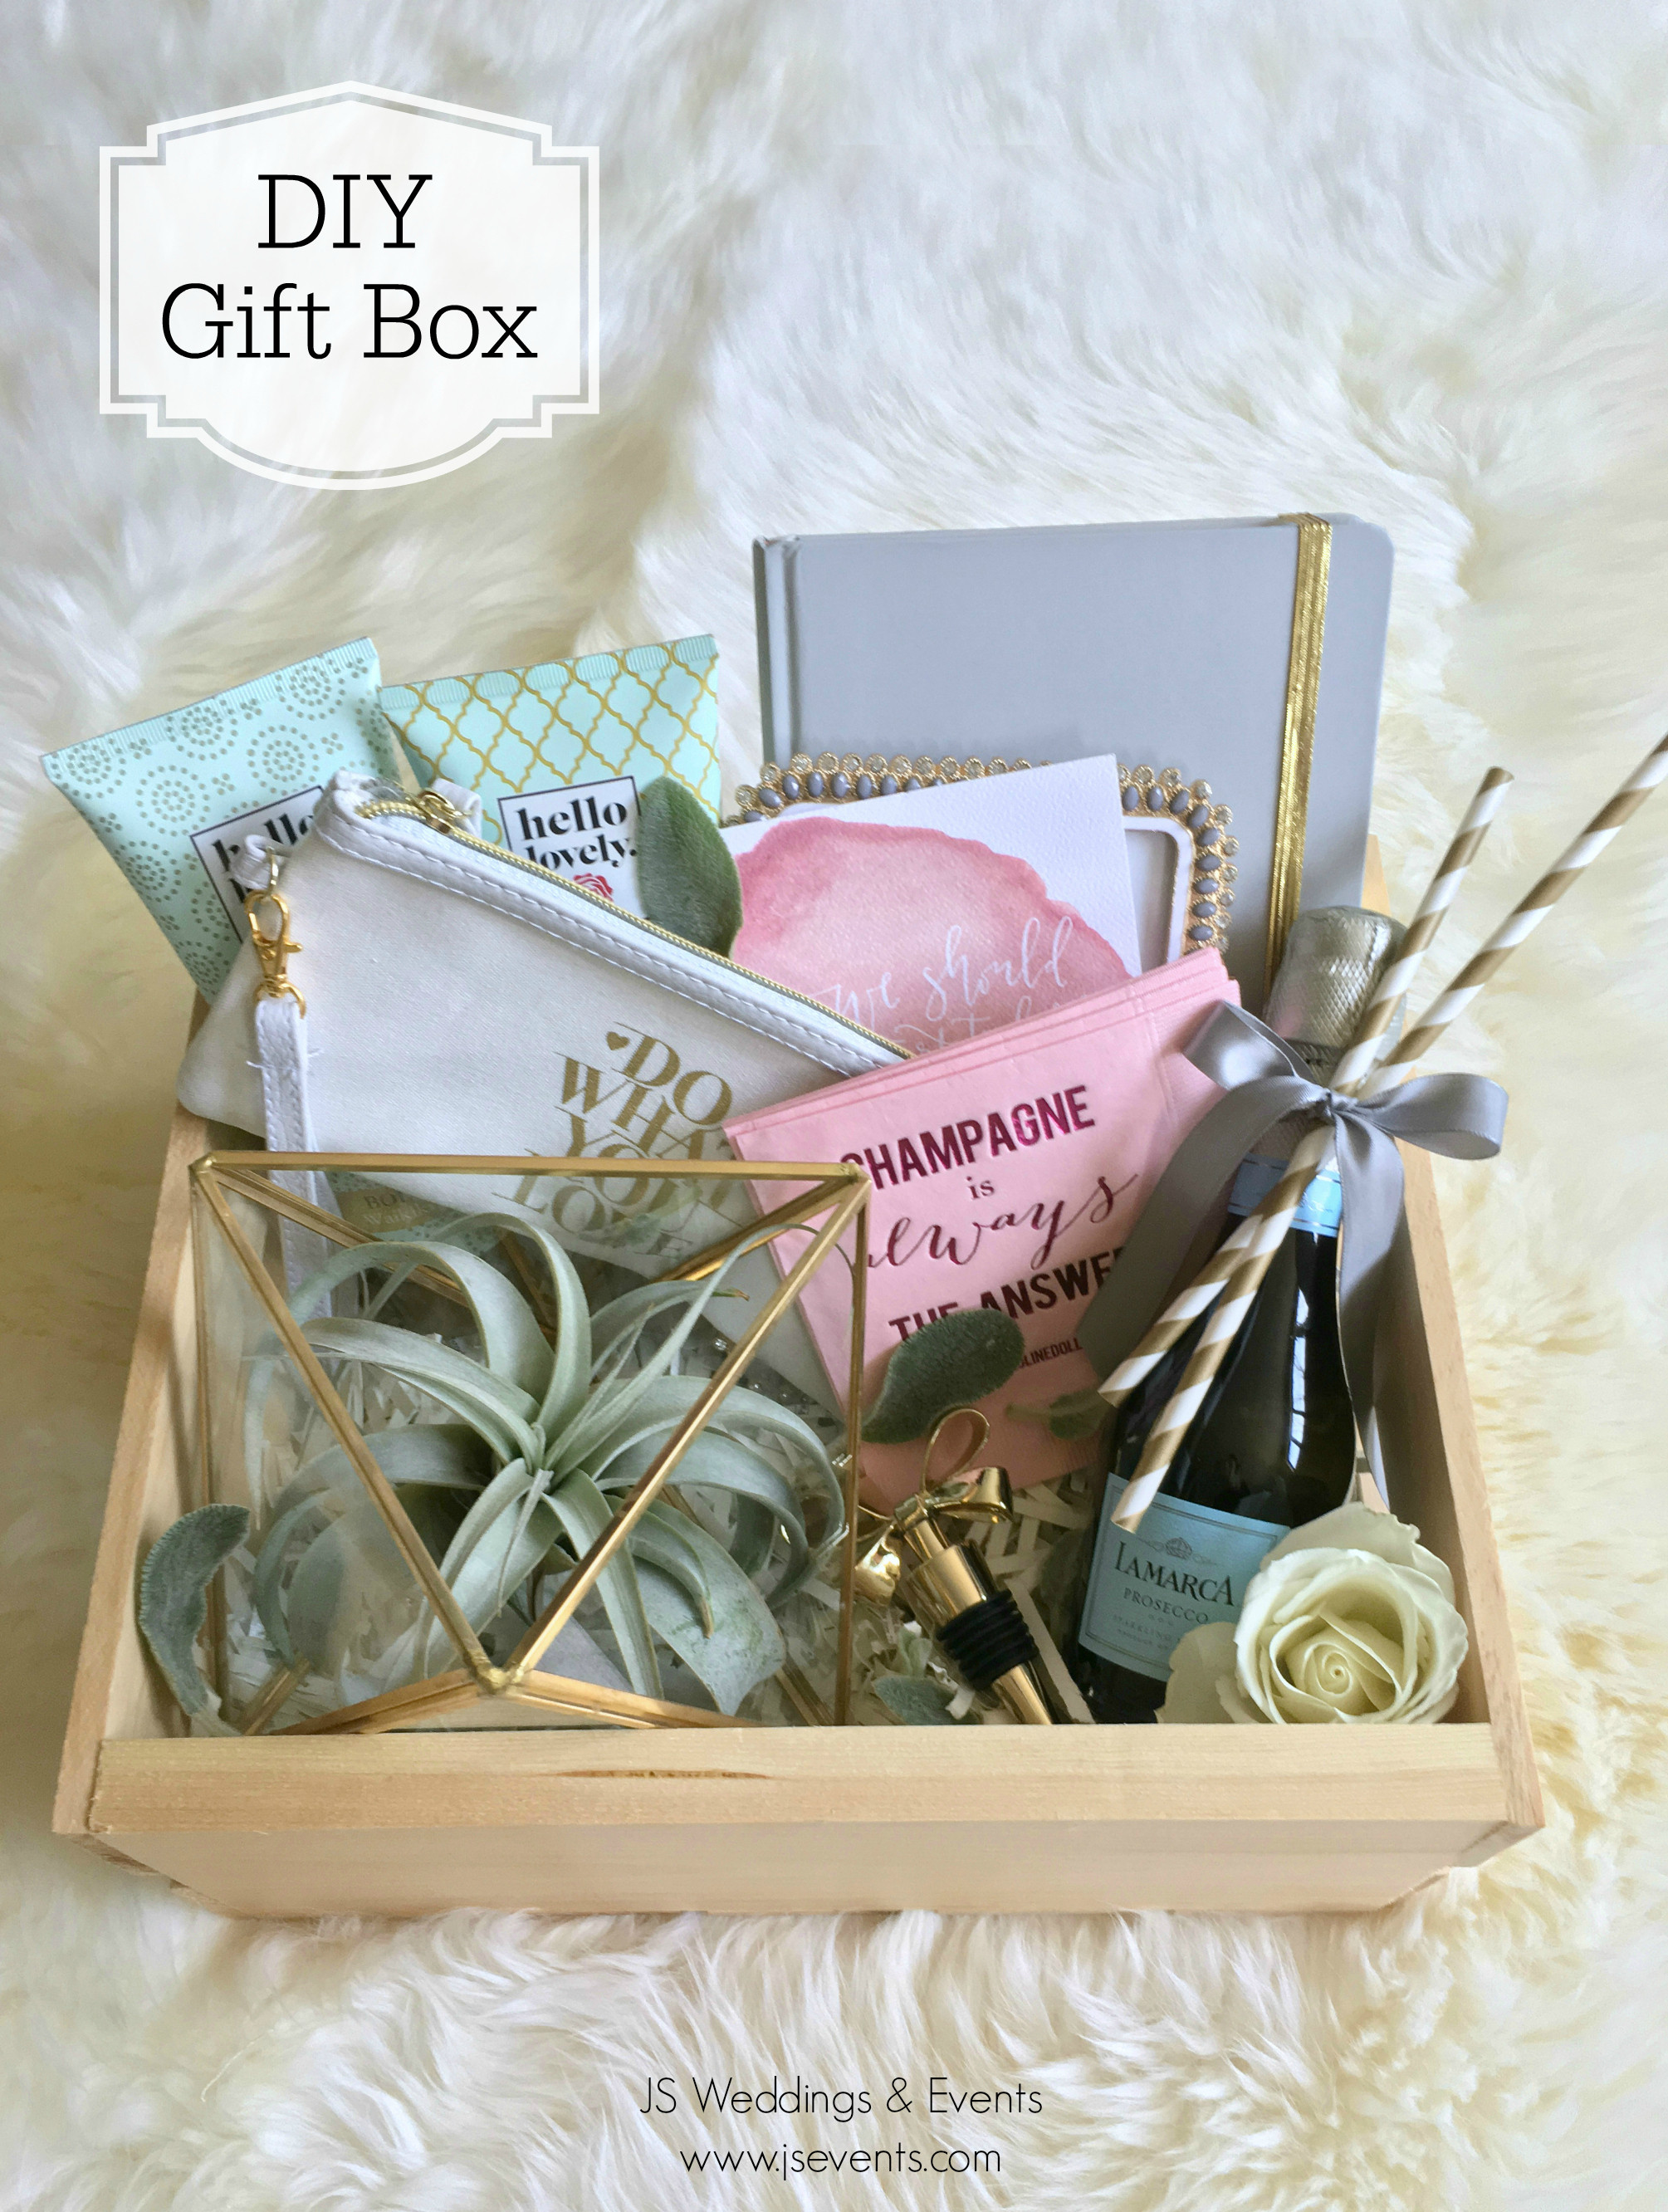 Best ideas about DIY Wedding Gift . Save or Pin DIY Gift Box js weddings and events Now.